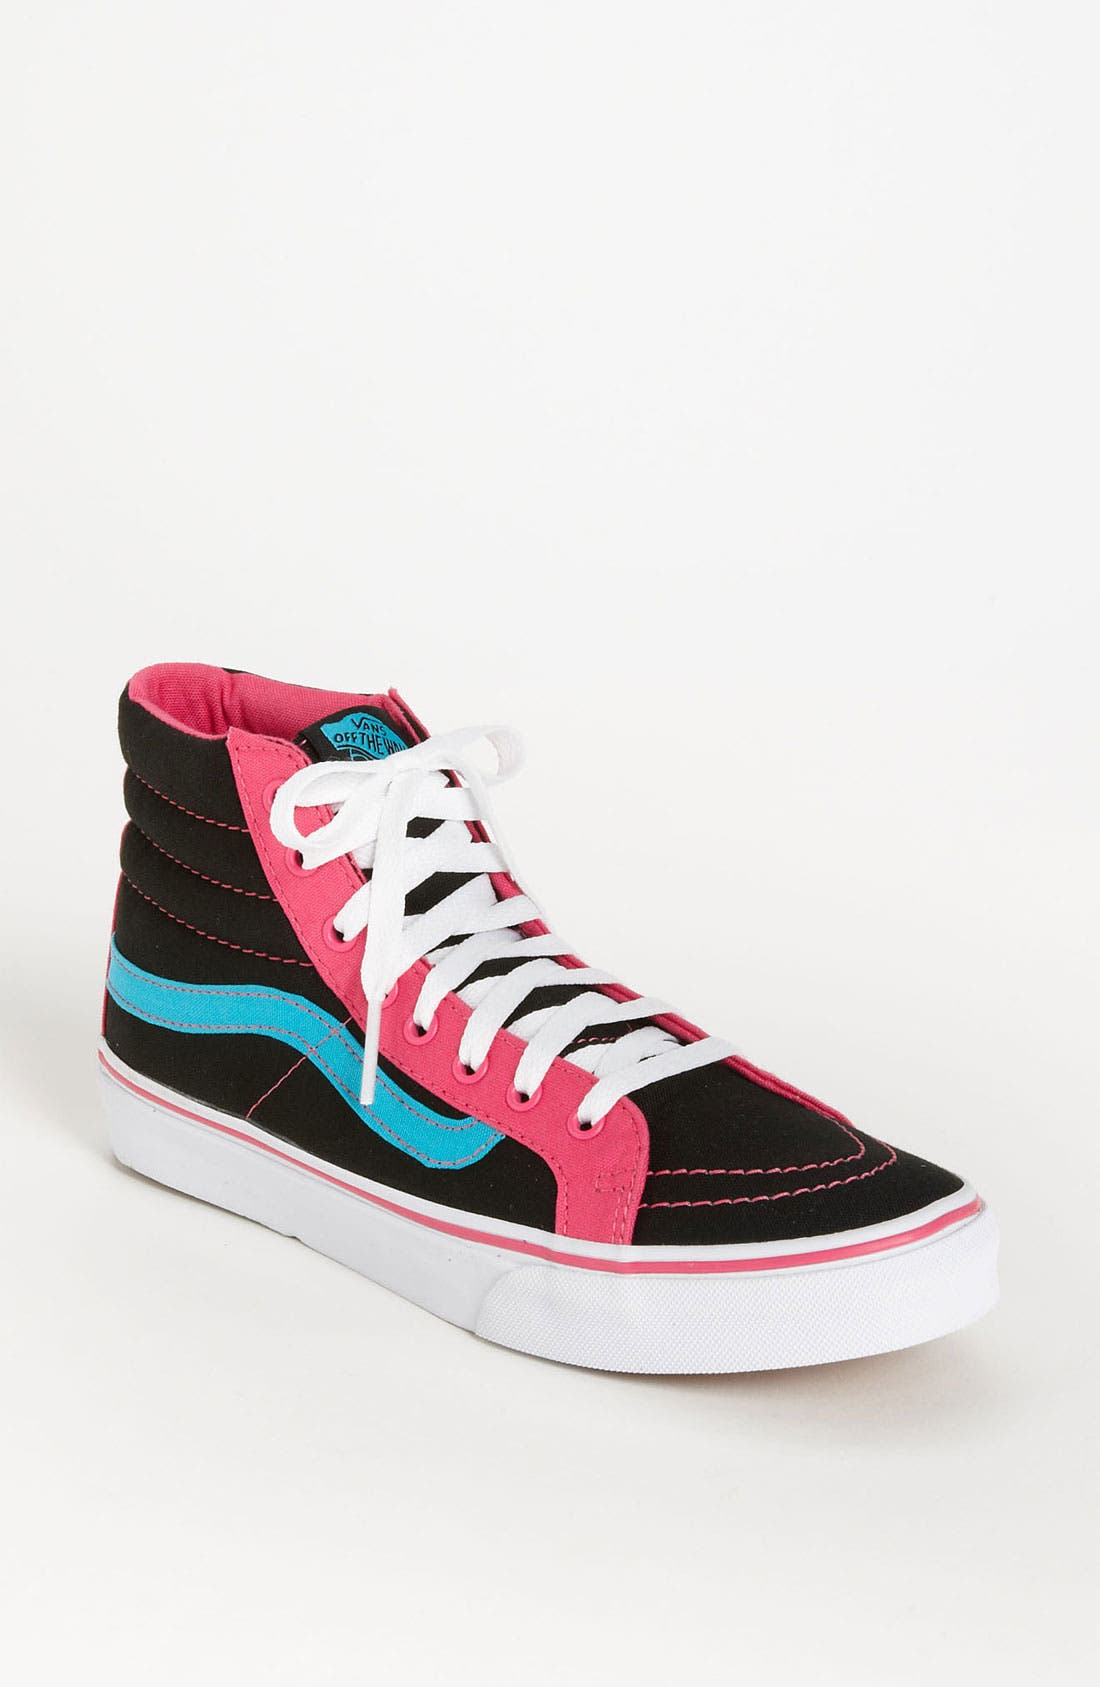 Main Image - Vans 'Sk8-Hi - Slim Pop' Sneaker (Women)